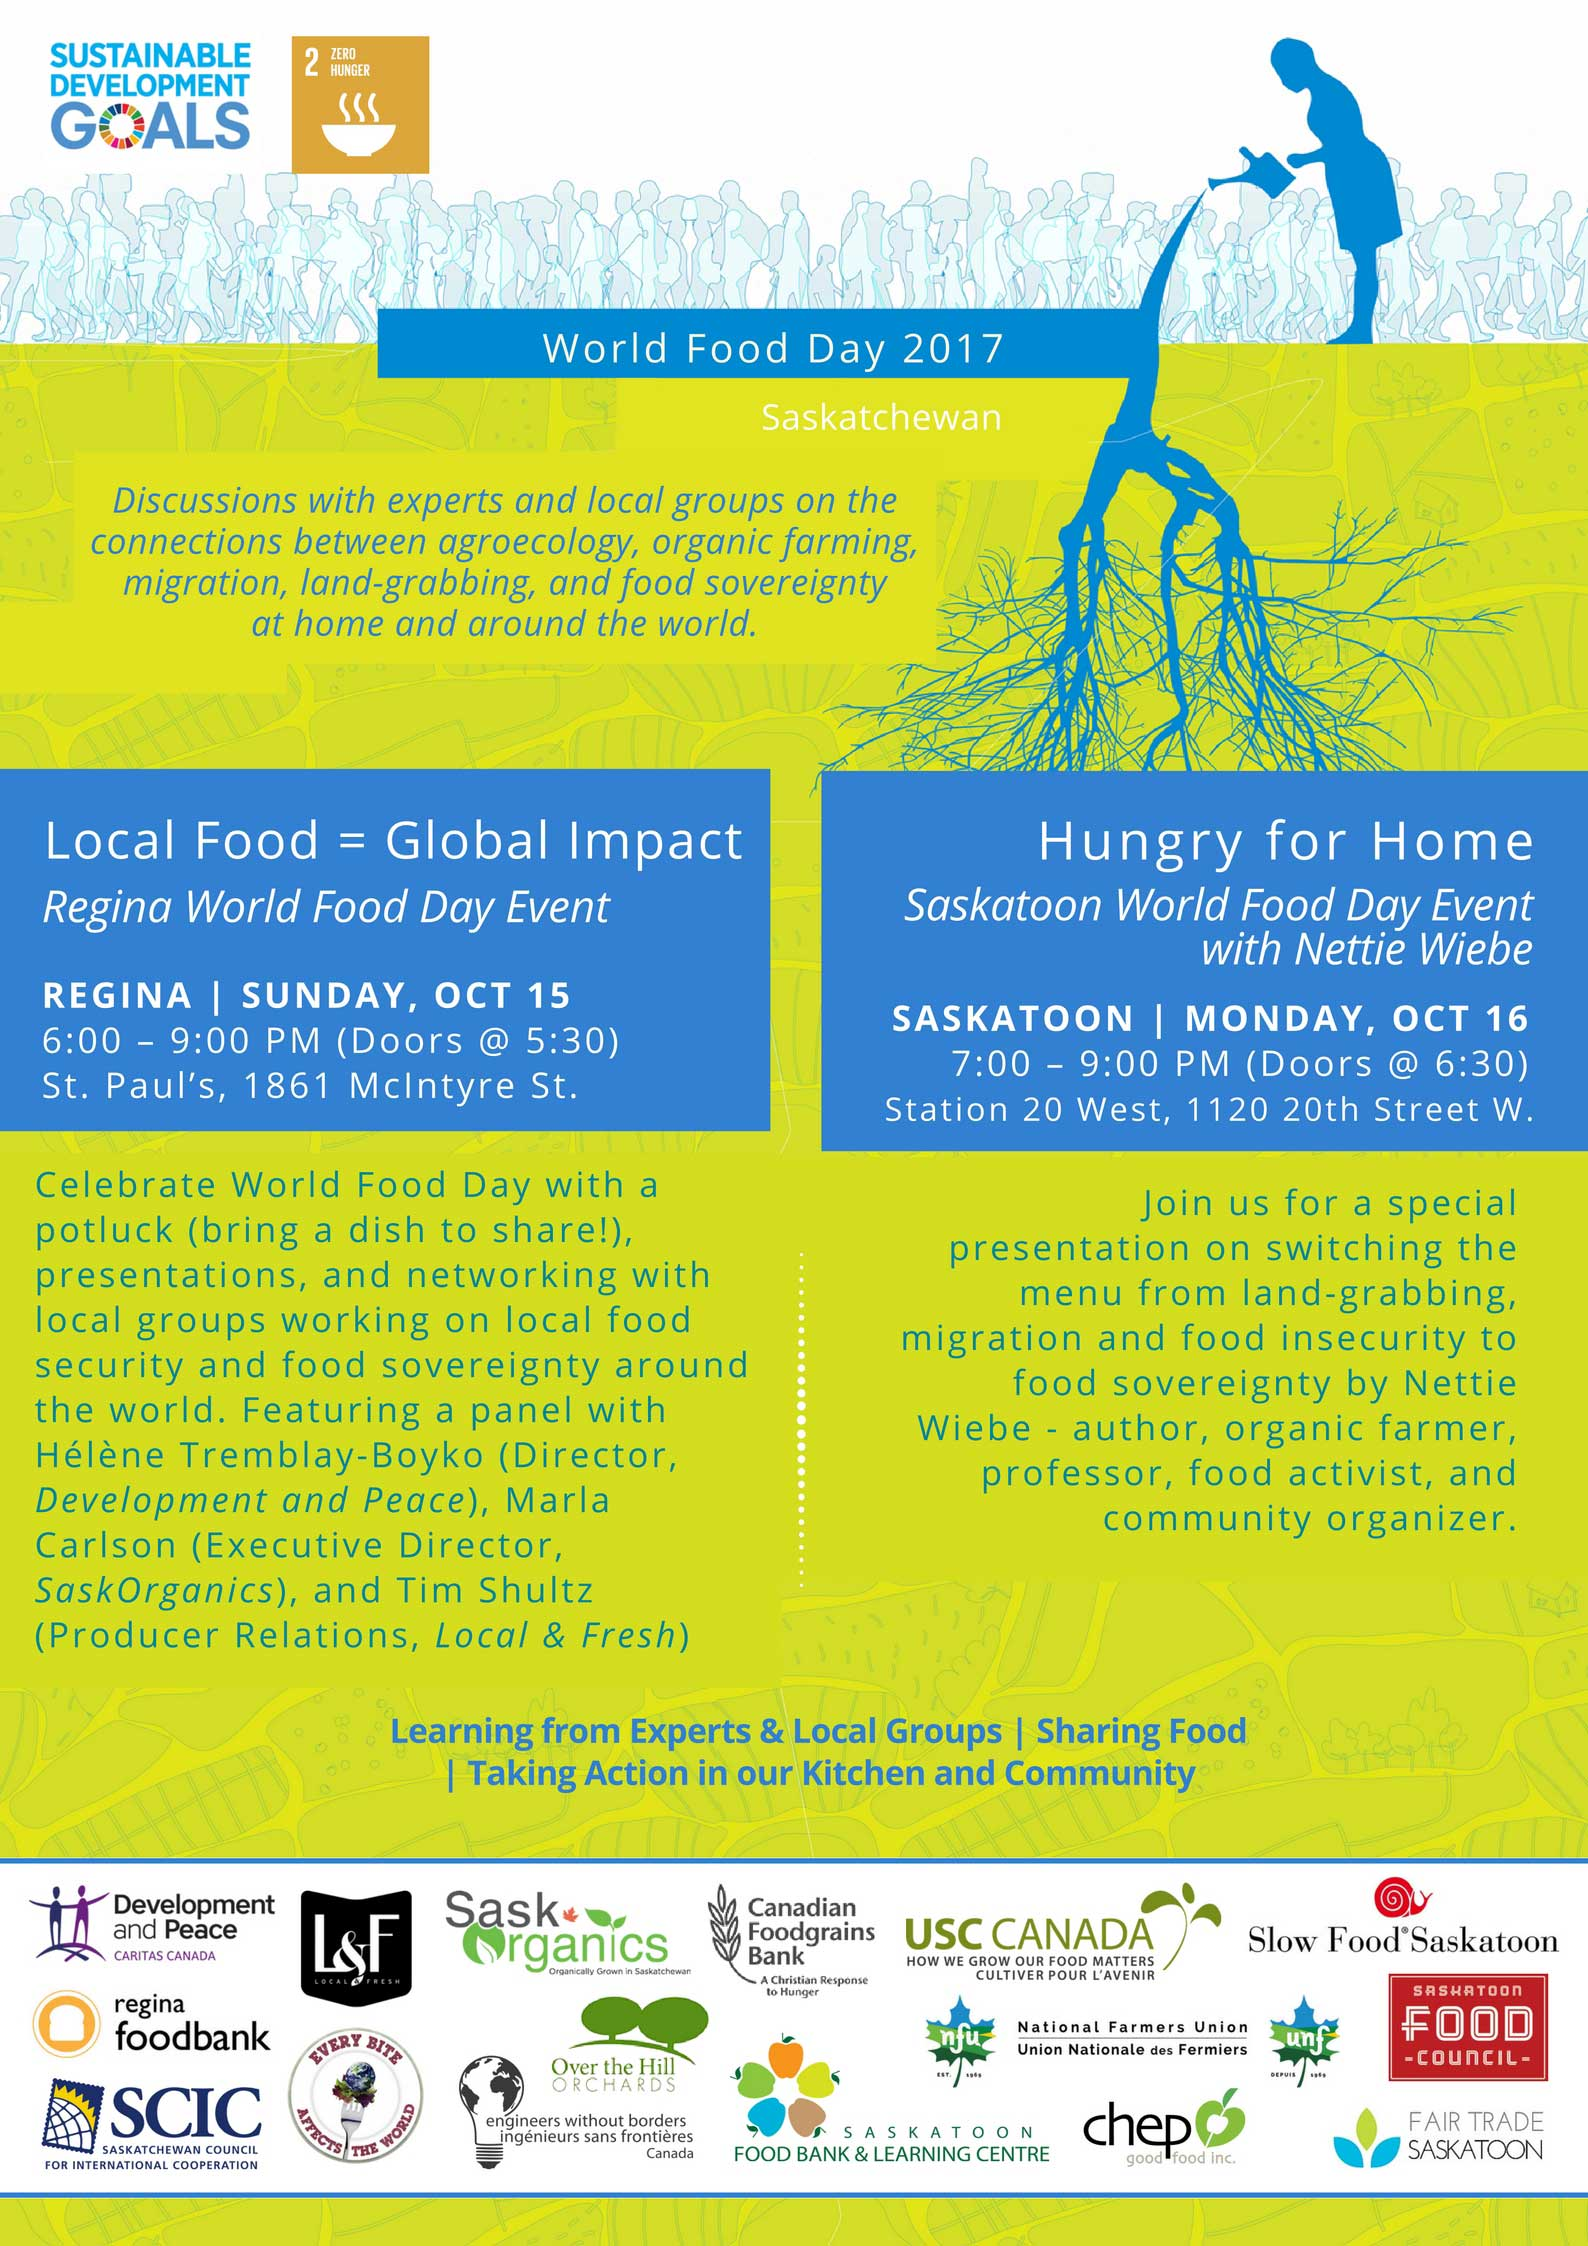 World food day events oct 15 16 2017 scic scic for World of war craft com